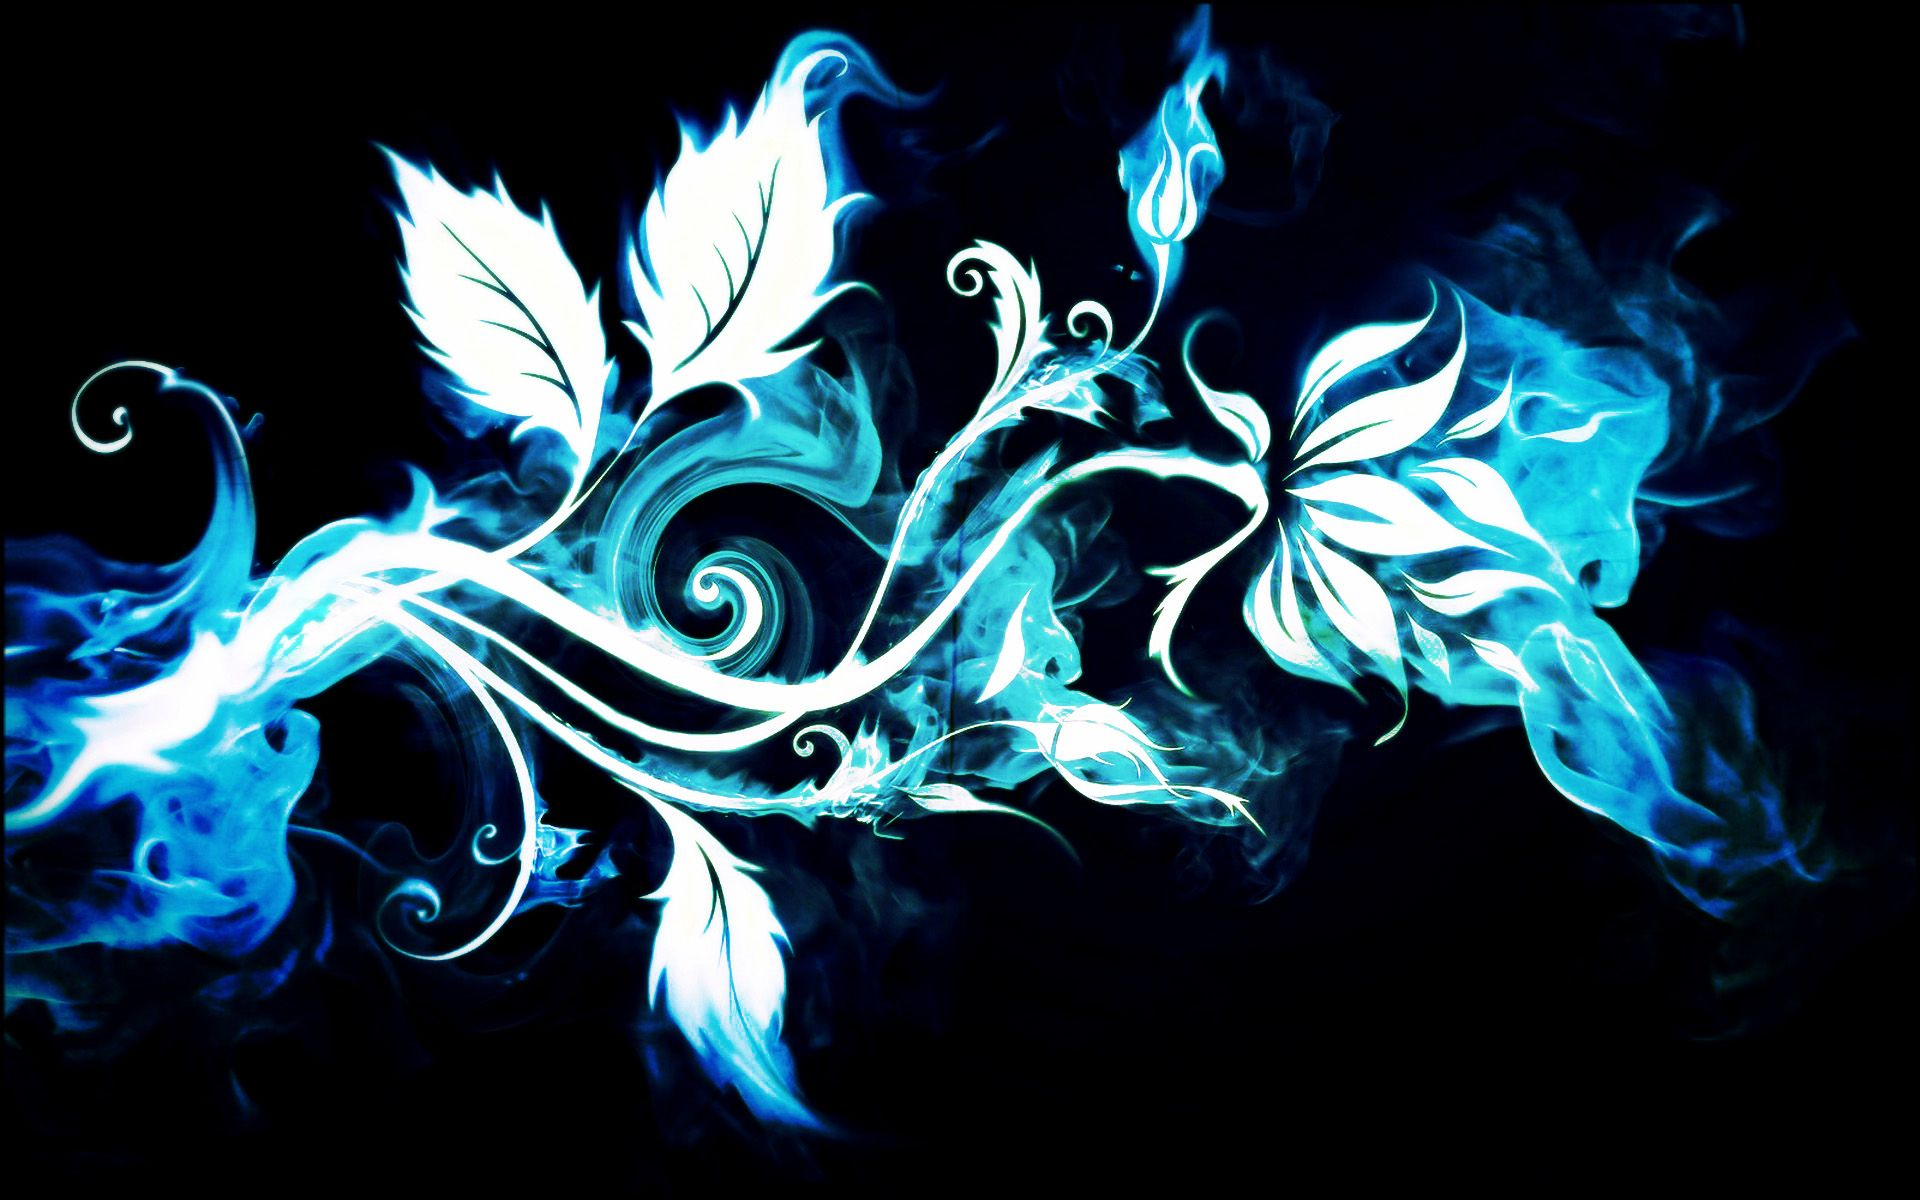 Artistic flower abstract blue smoke wallpaper asztali s mobil artistic flower abstract blue smoke wallpaper izmirmasajfo